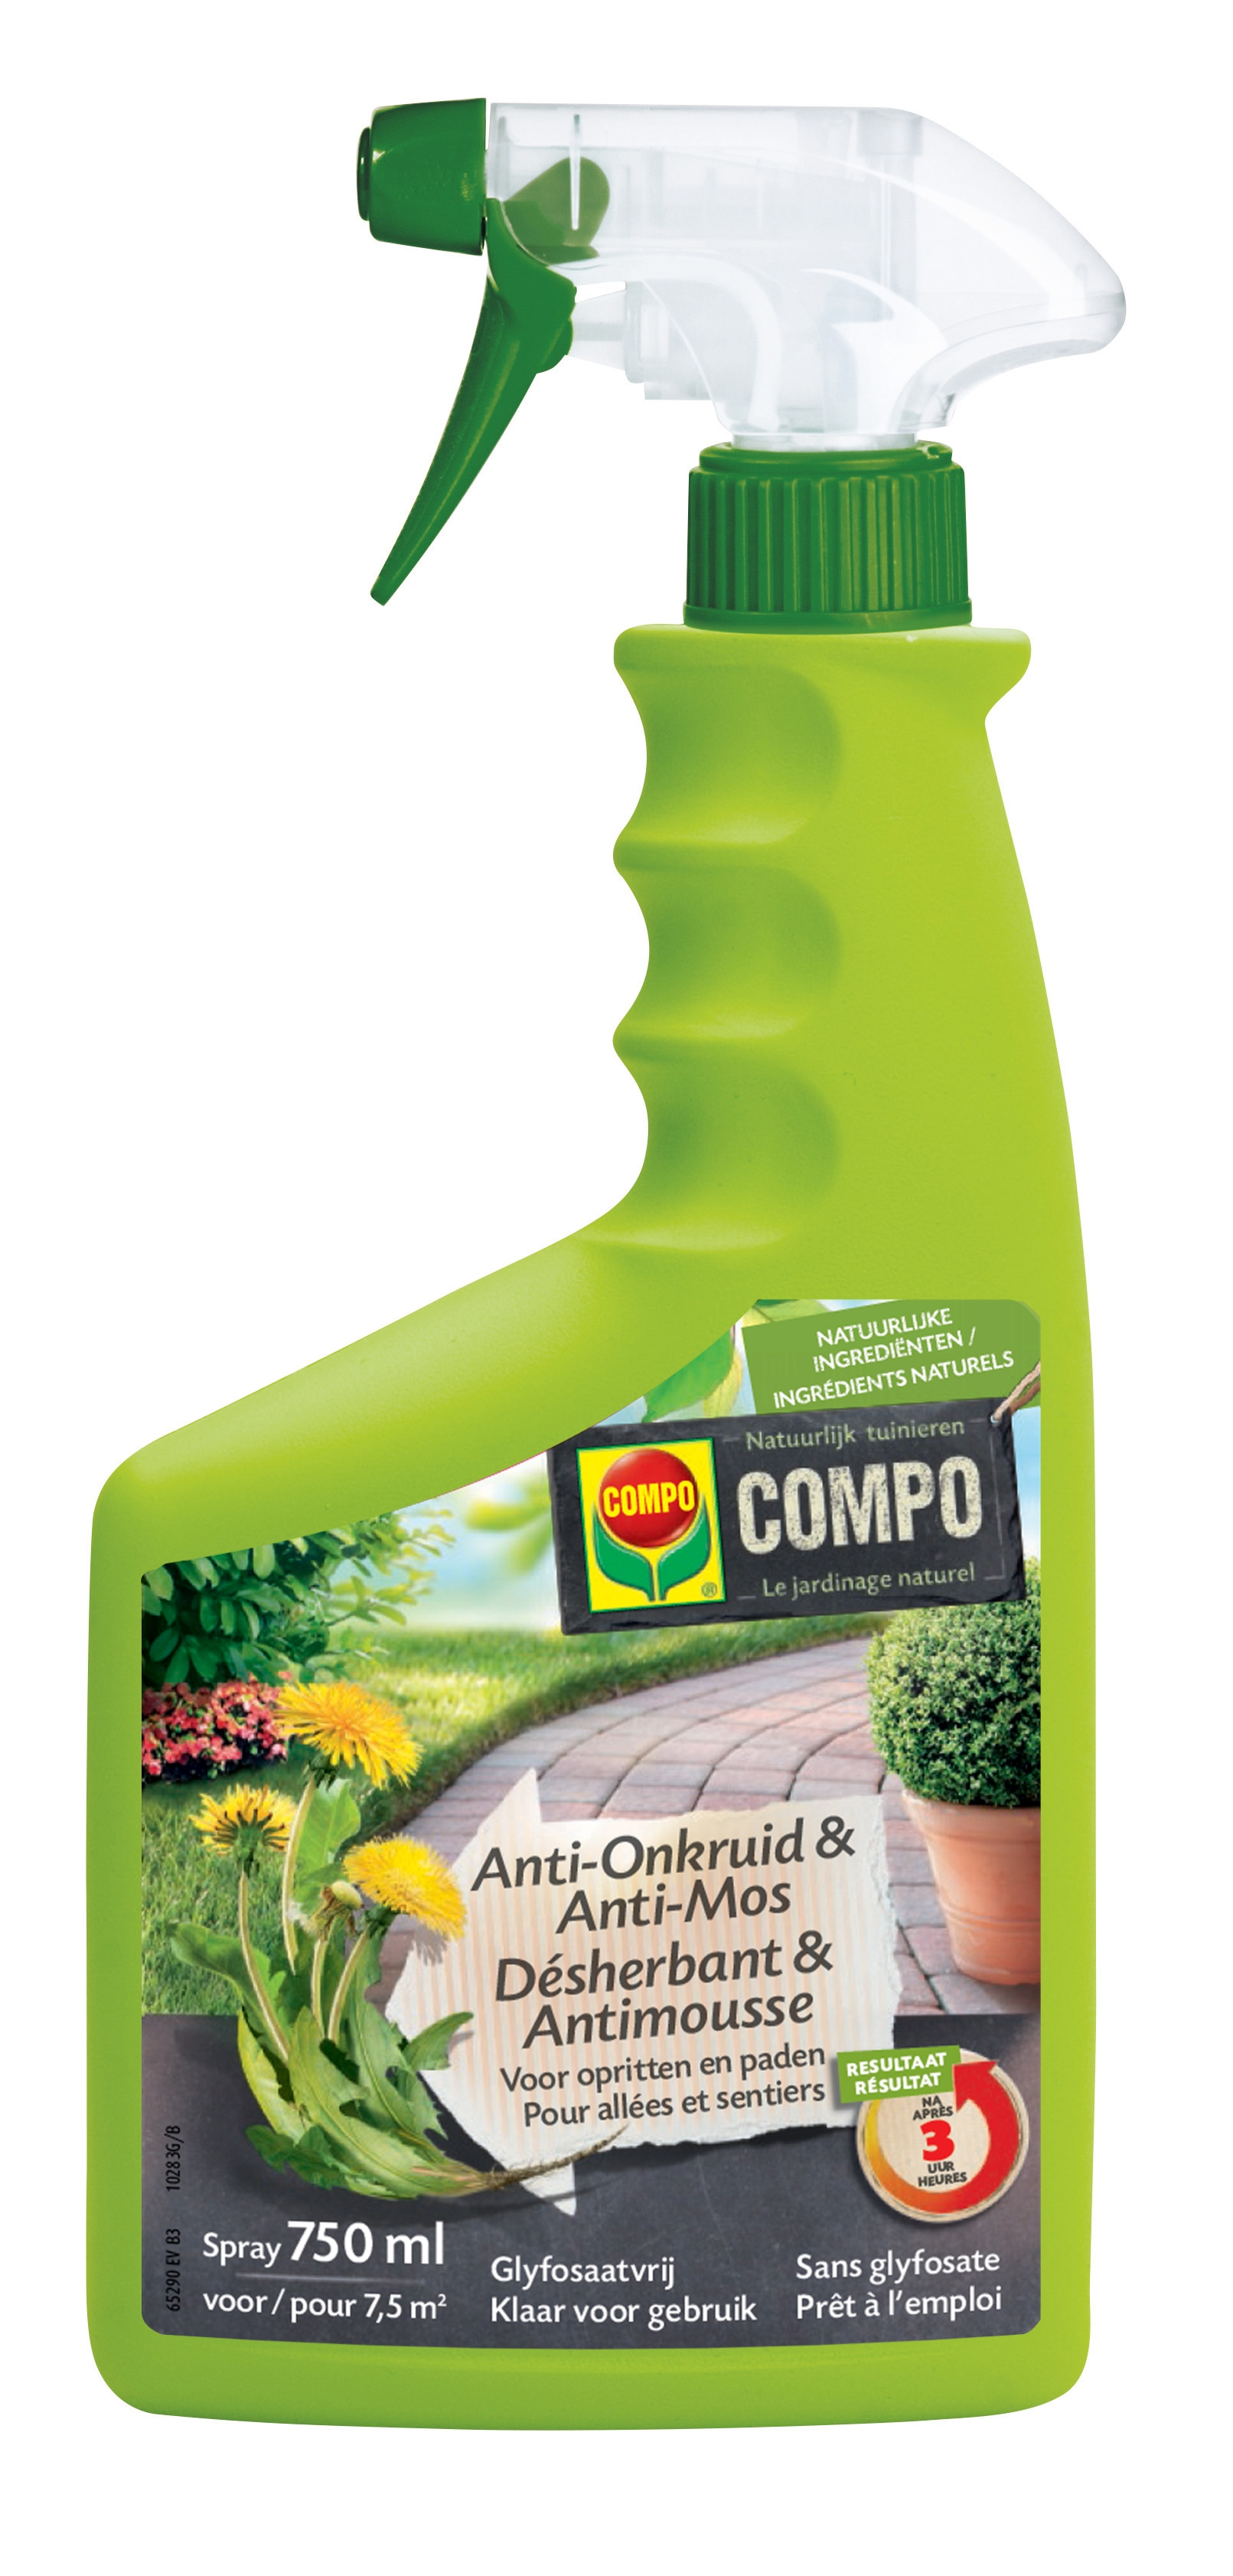 Compo Anti Onkruid en Anti Mos Spray voor opritten en paden 750ml